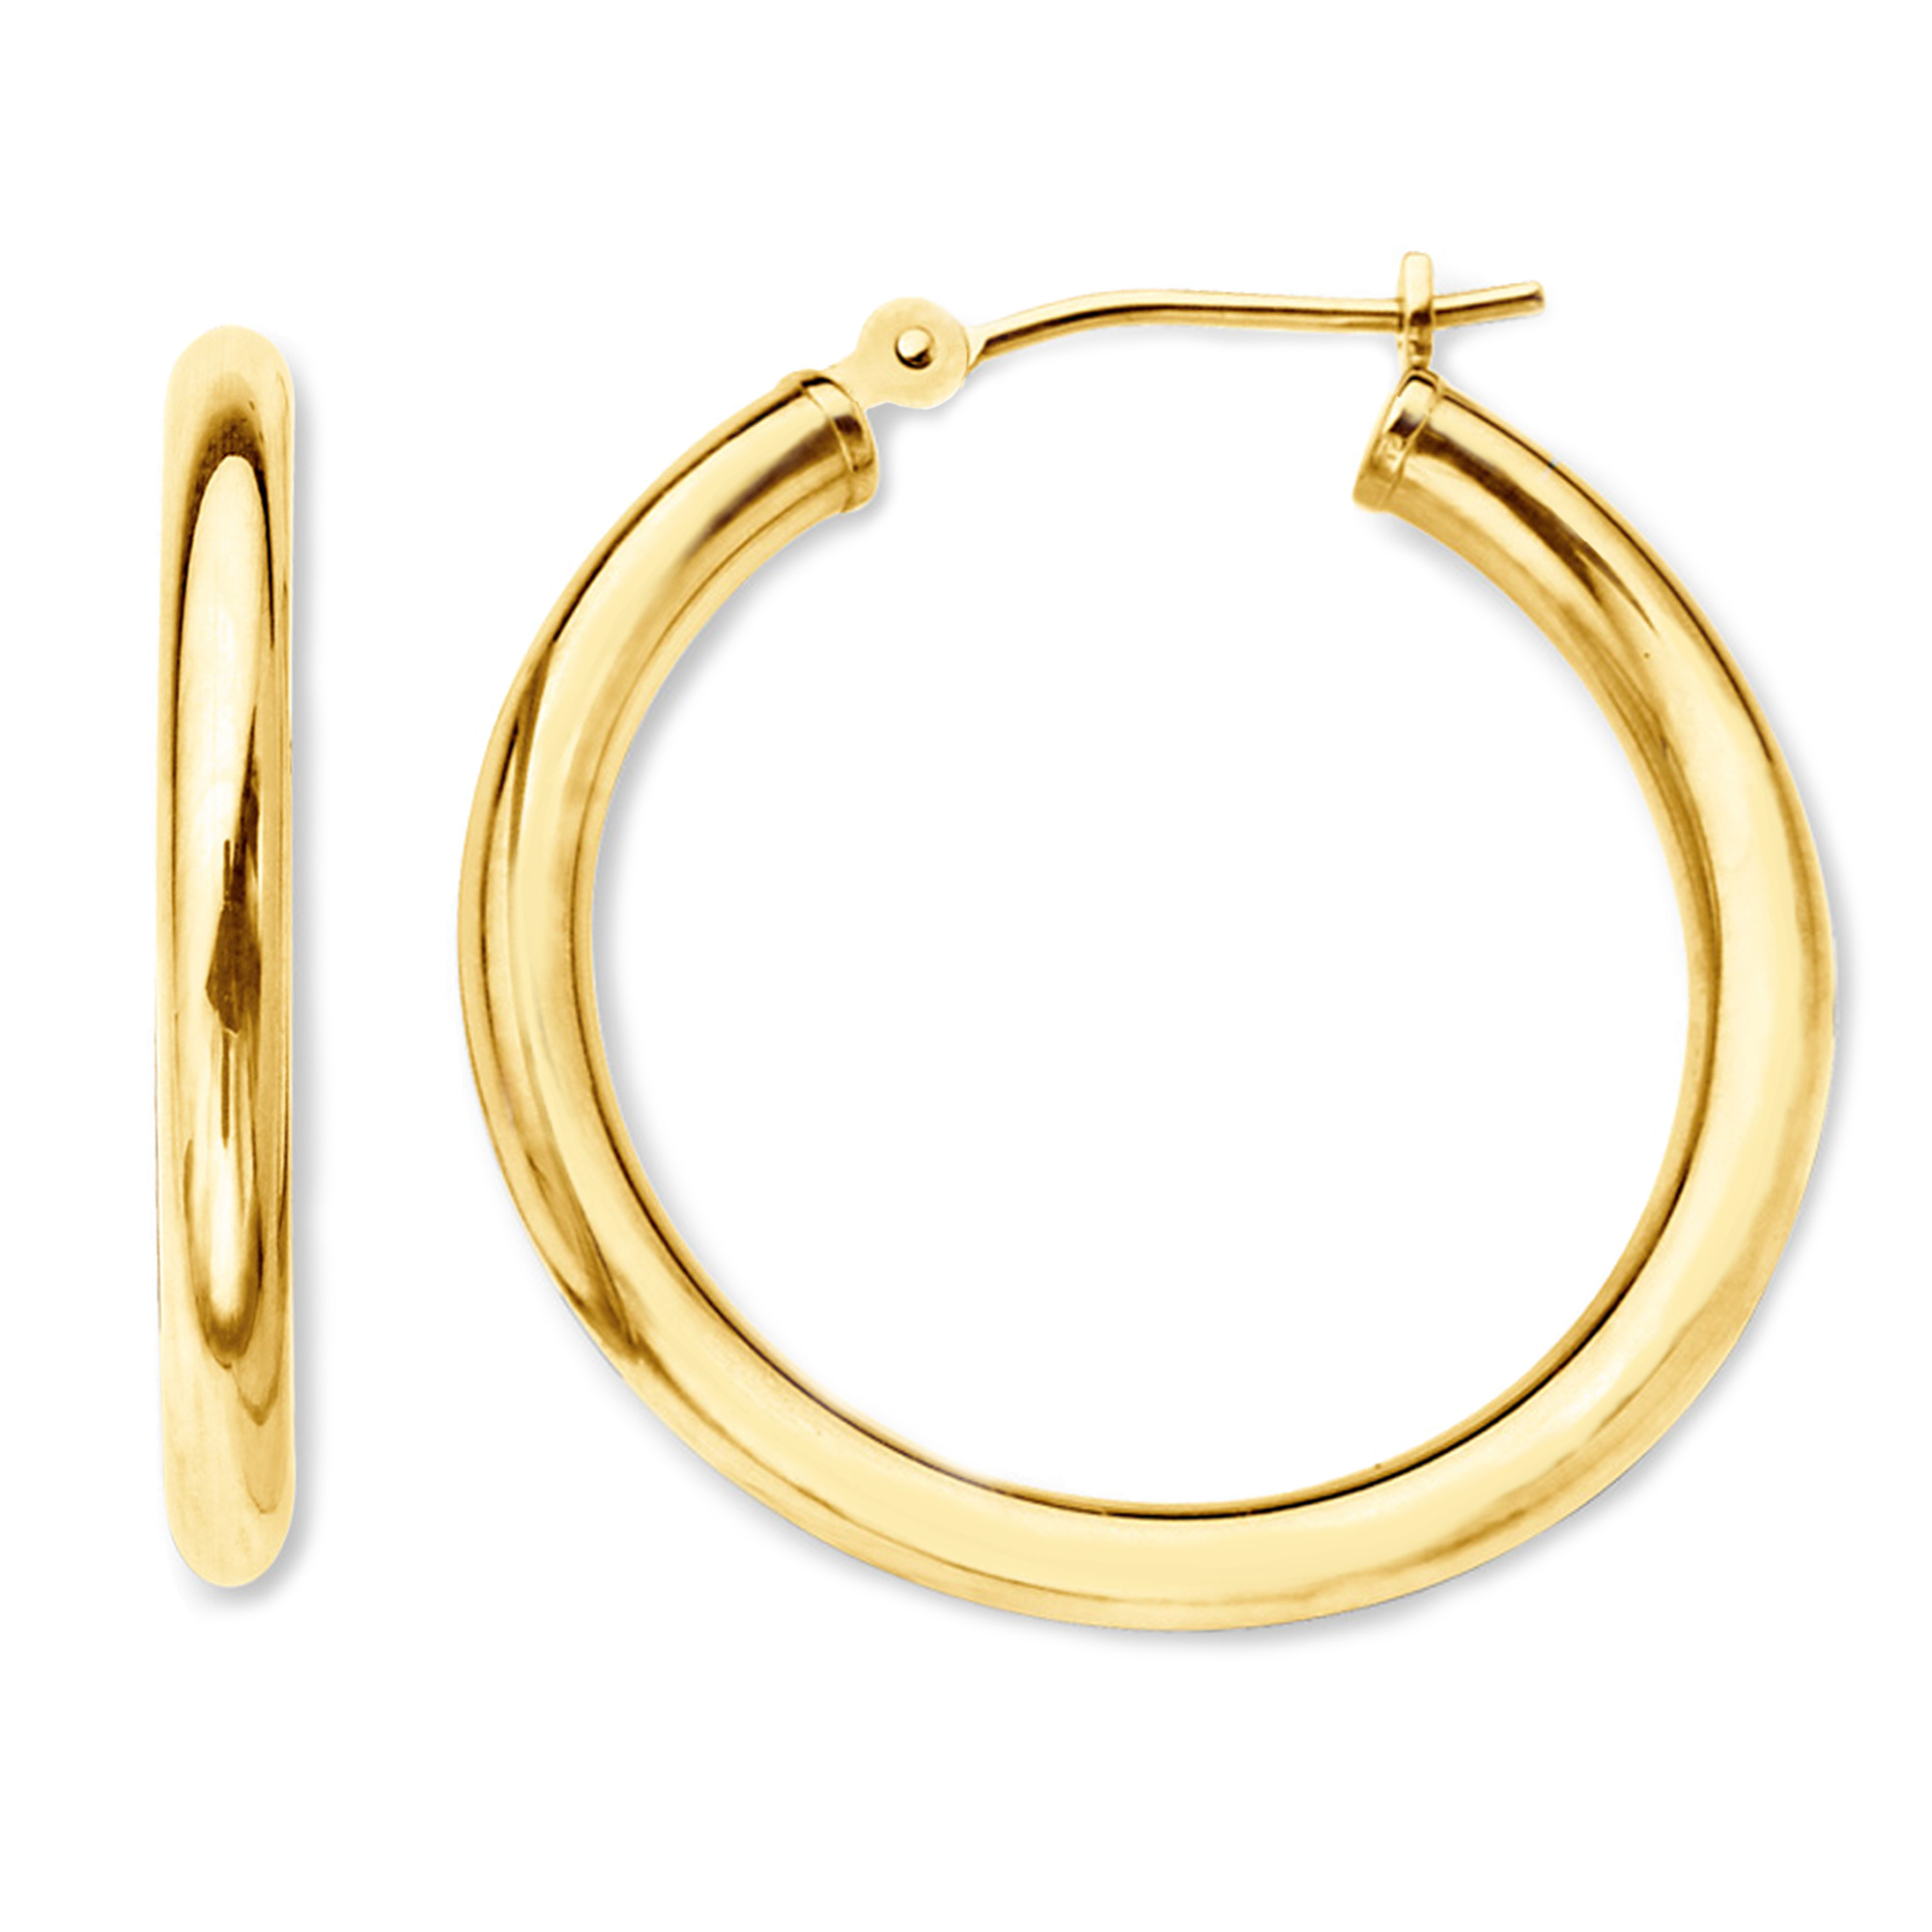 14K Yellow Gold 2MM Shiny Round Tube Hoop Earrings, 50mm Complete your jewelry collection with a gorgeous pair of 14K gold hoop earrings. Whether you prefer large bohemian look or tiny orbs, you'll discover plenty of sizes to match your style. These earrings have a secure snap post clasp making them easy to wear and remove. Earrings come in a  gift box making them ready to be gifted.